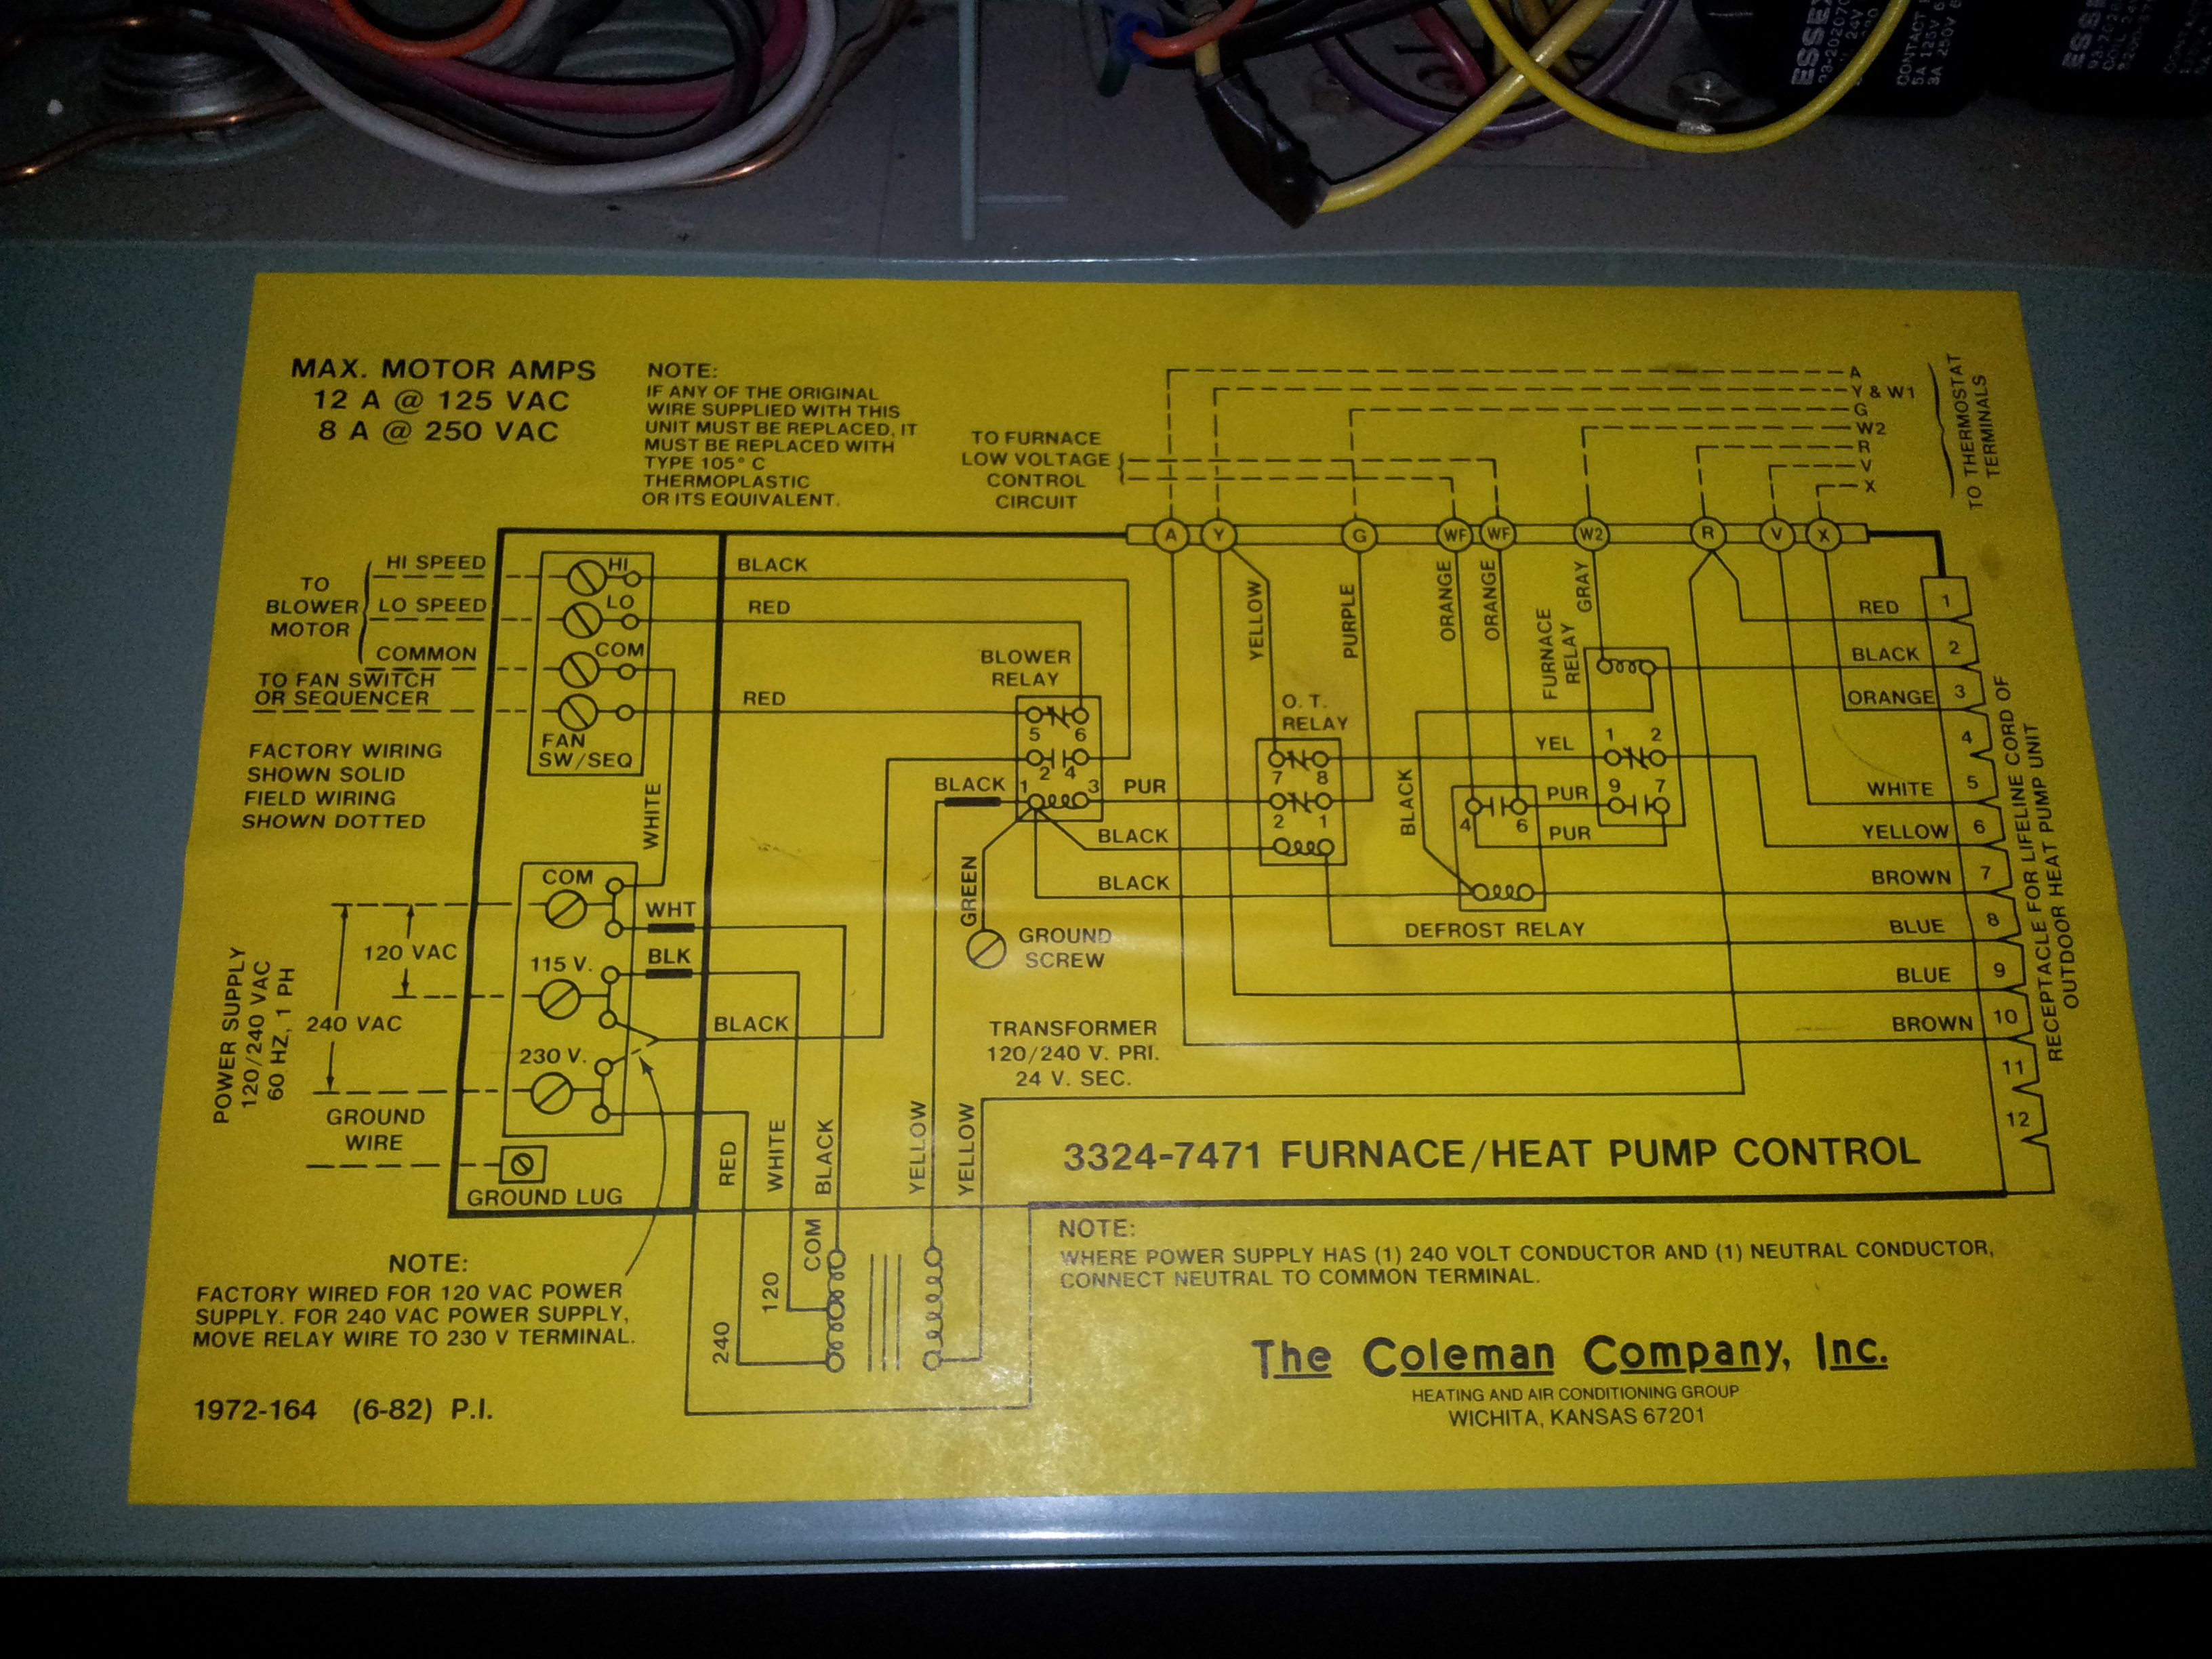 Wiring Diagram For Coleman Evcon Furnace from wiringall.com